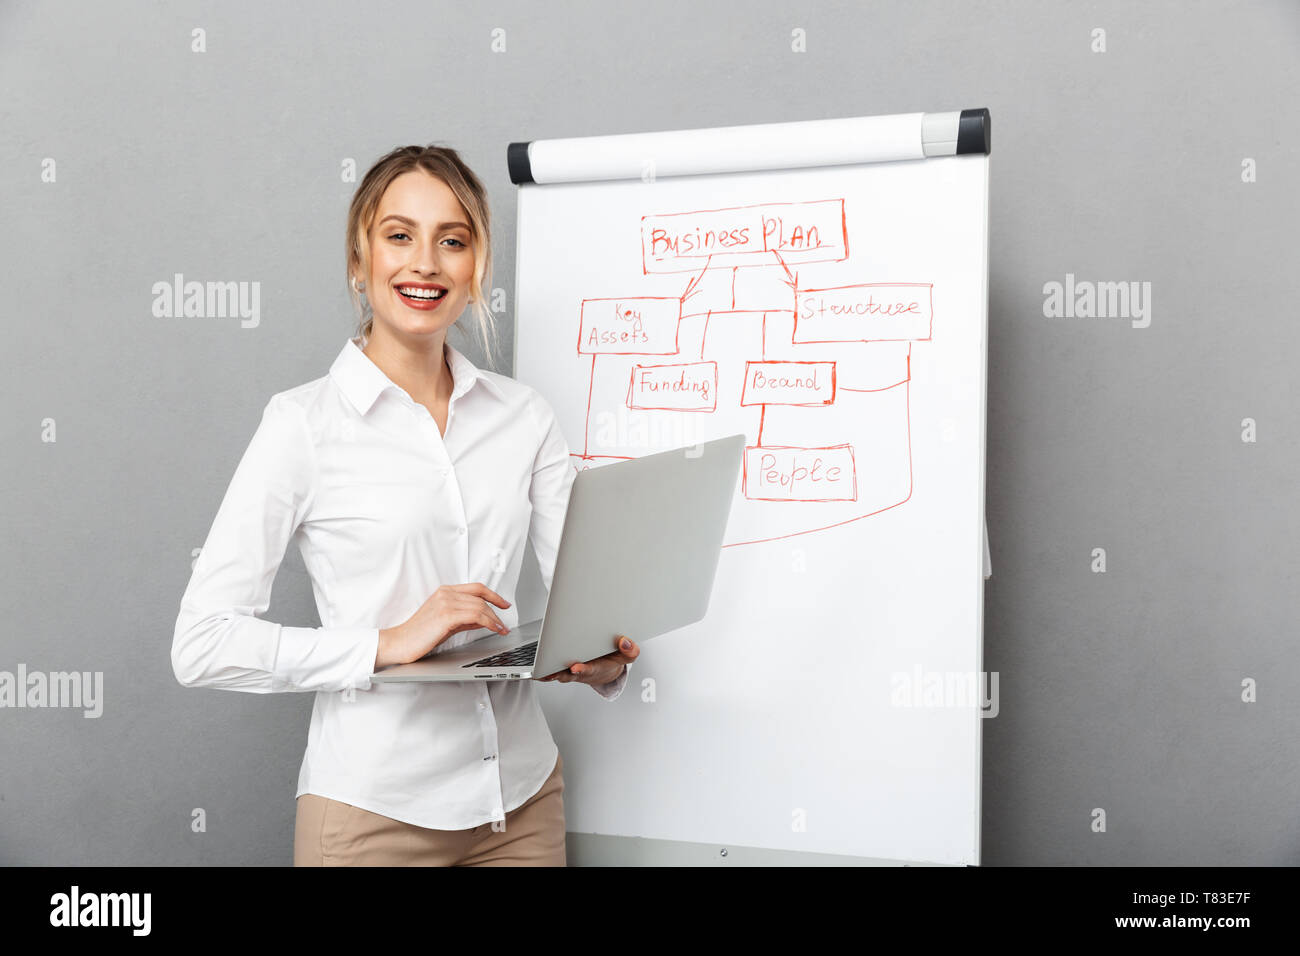 Image of businesslike woman in formal wear using flipchart and laptop while making presentation in the office isolated over gray background - Stock Image